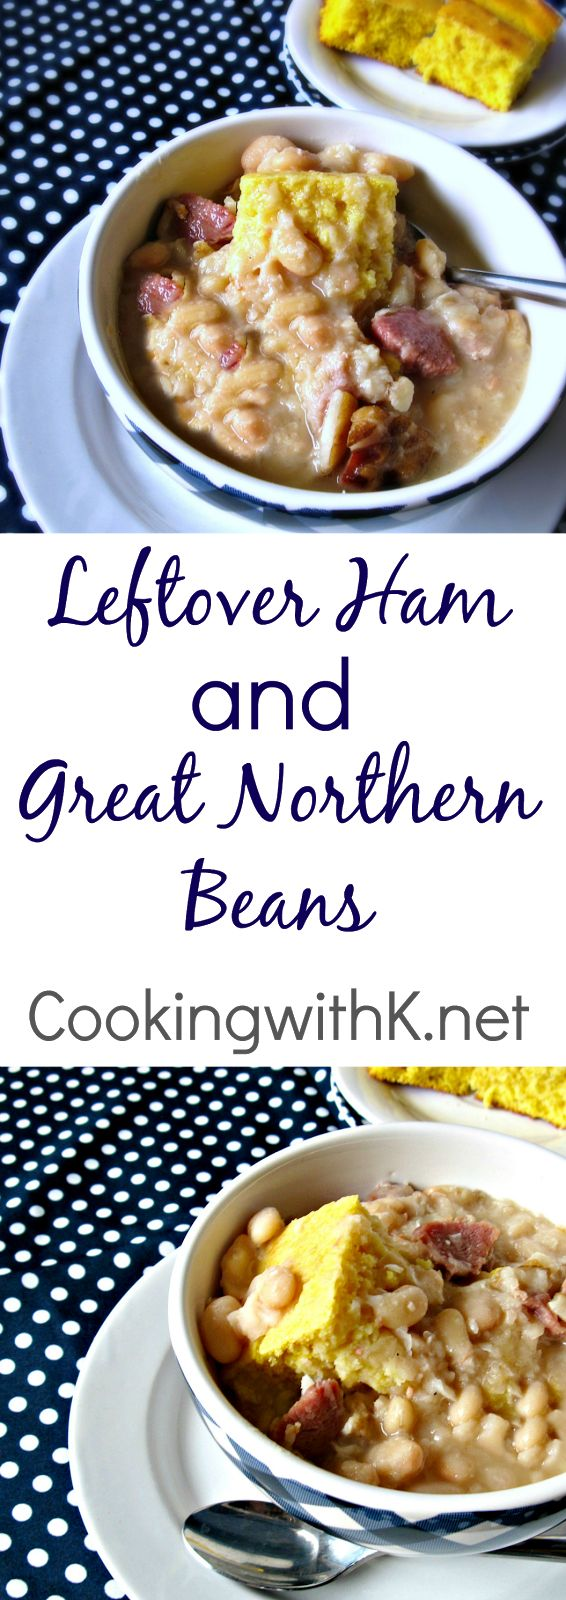 Leftover Ham makes the most delicious Great Northern Beans.  Cook the ham and beans together in a crockpot!